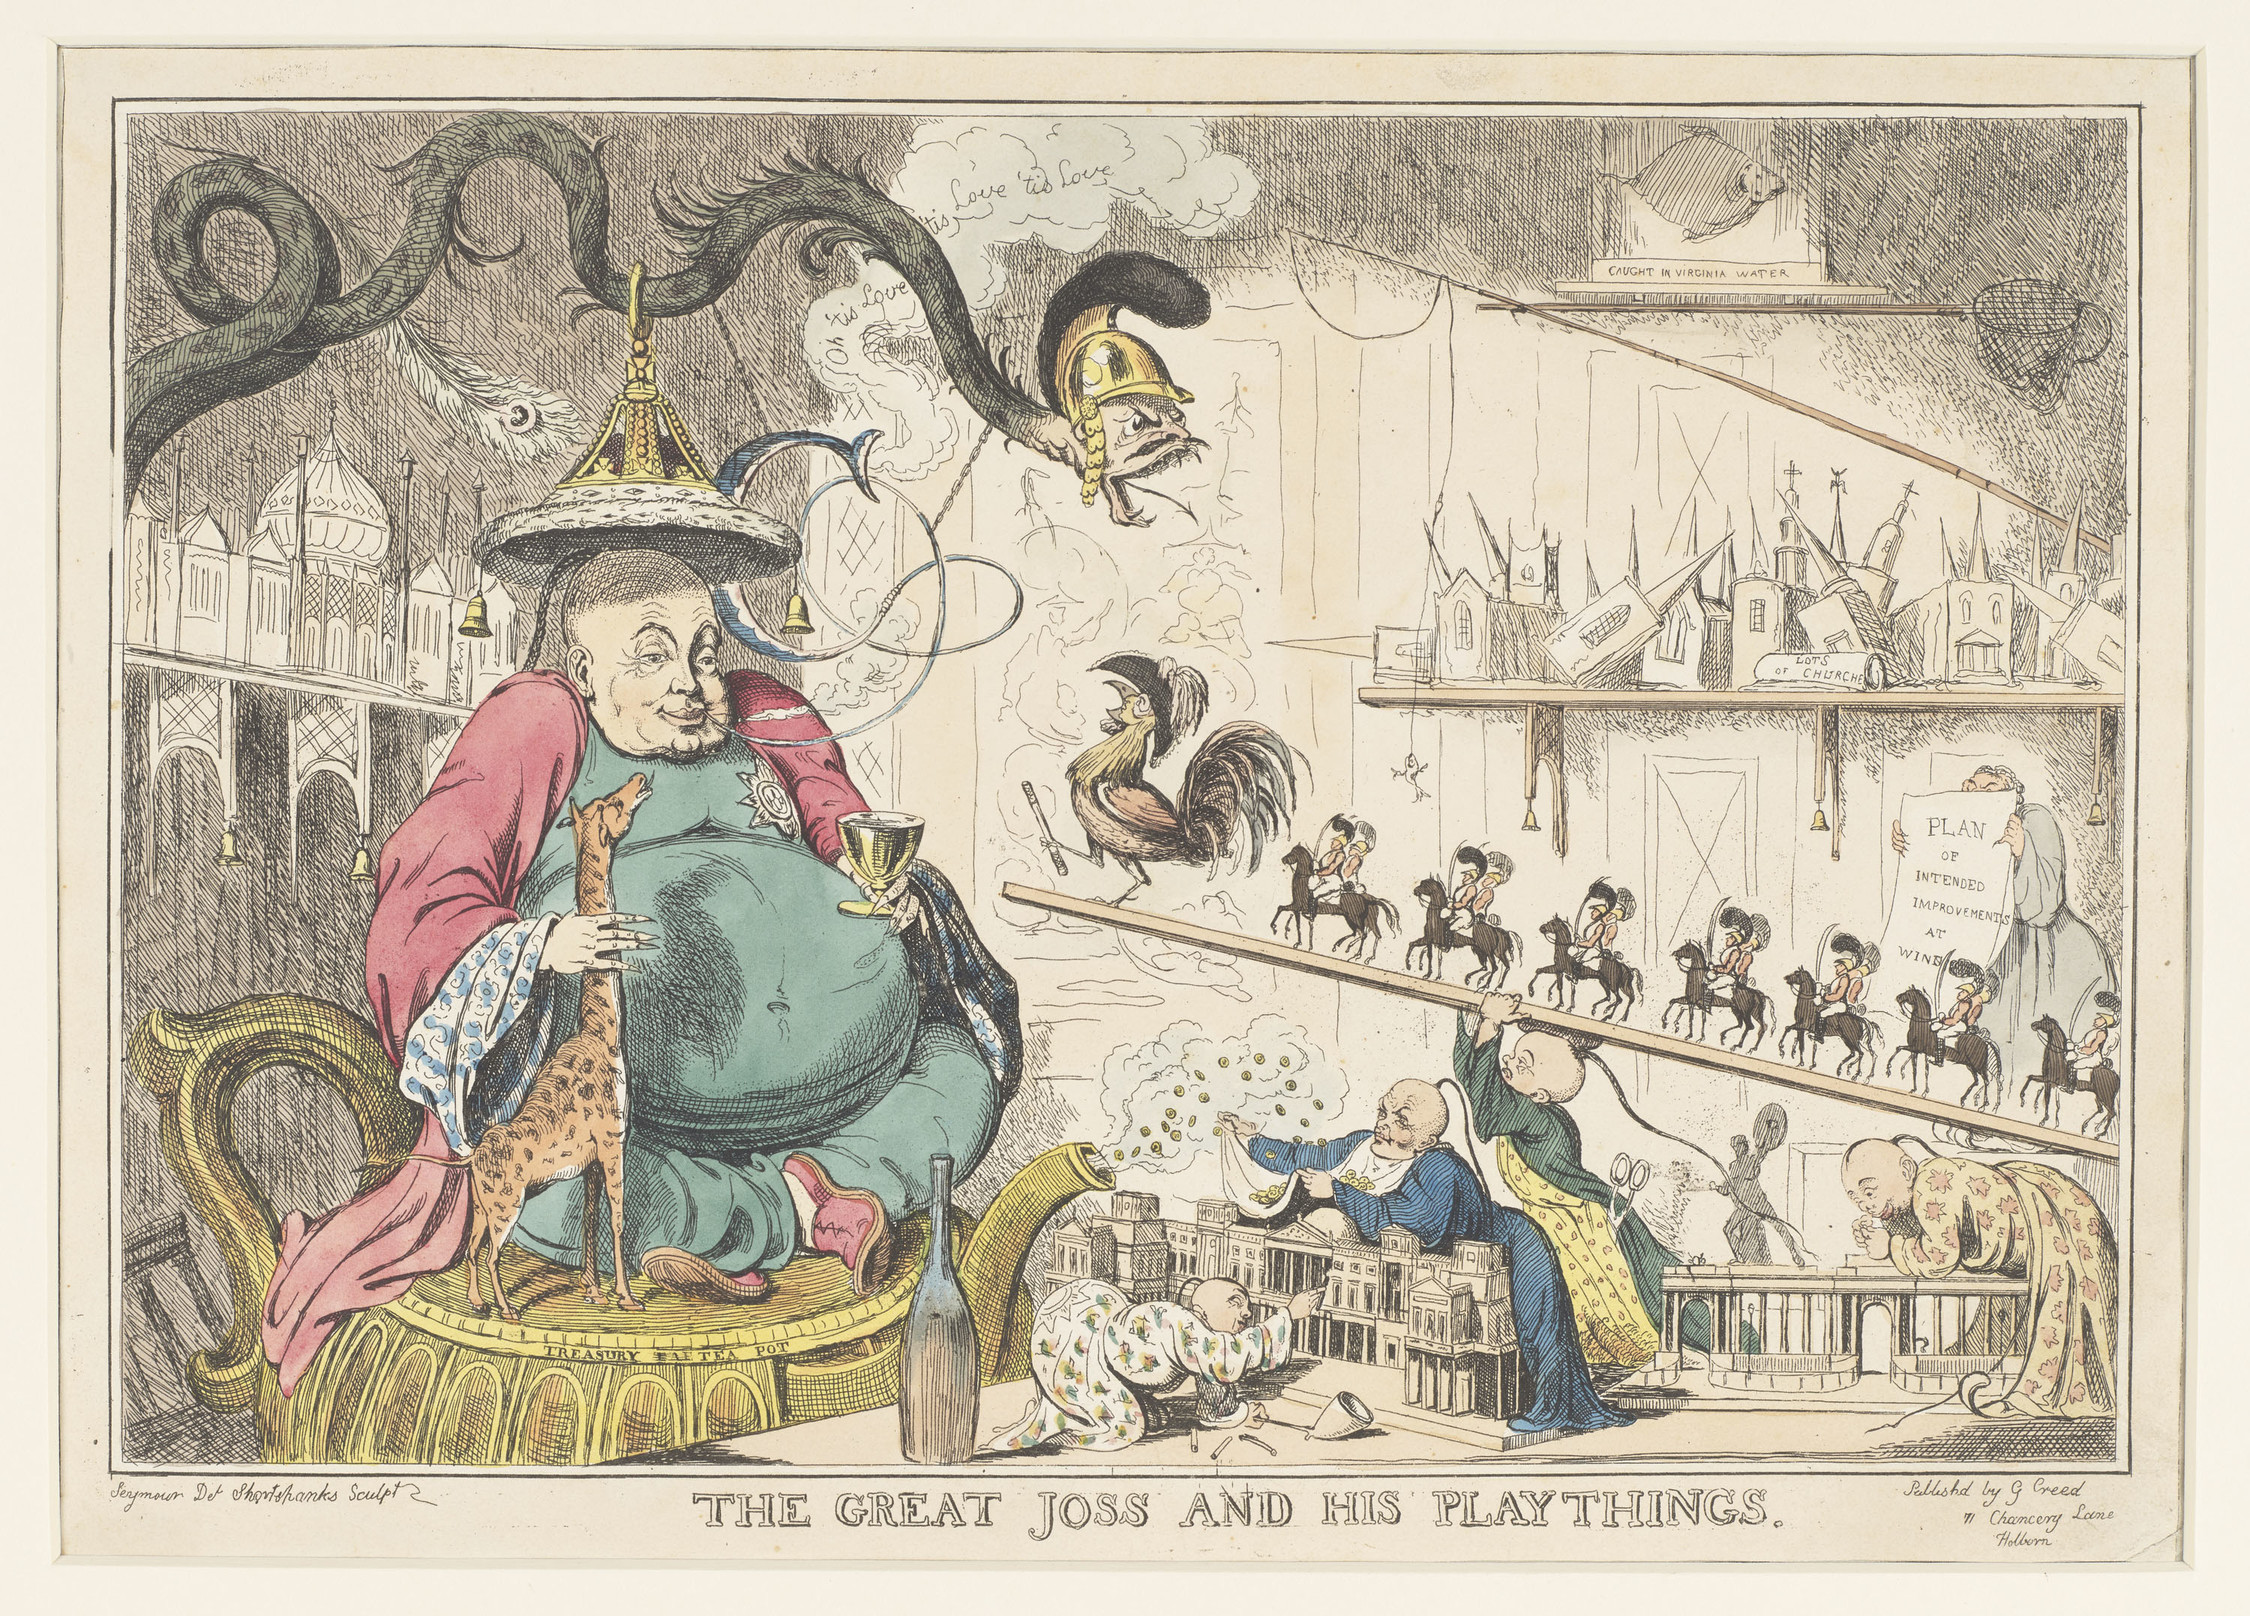 Robert Seymour, The Great Joss and his Playthings, c.1829